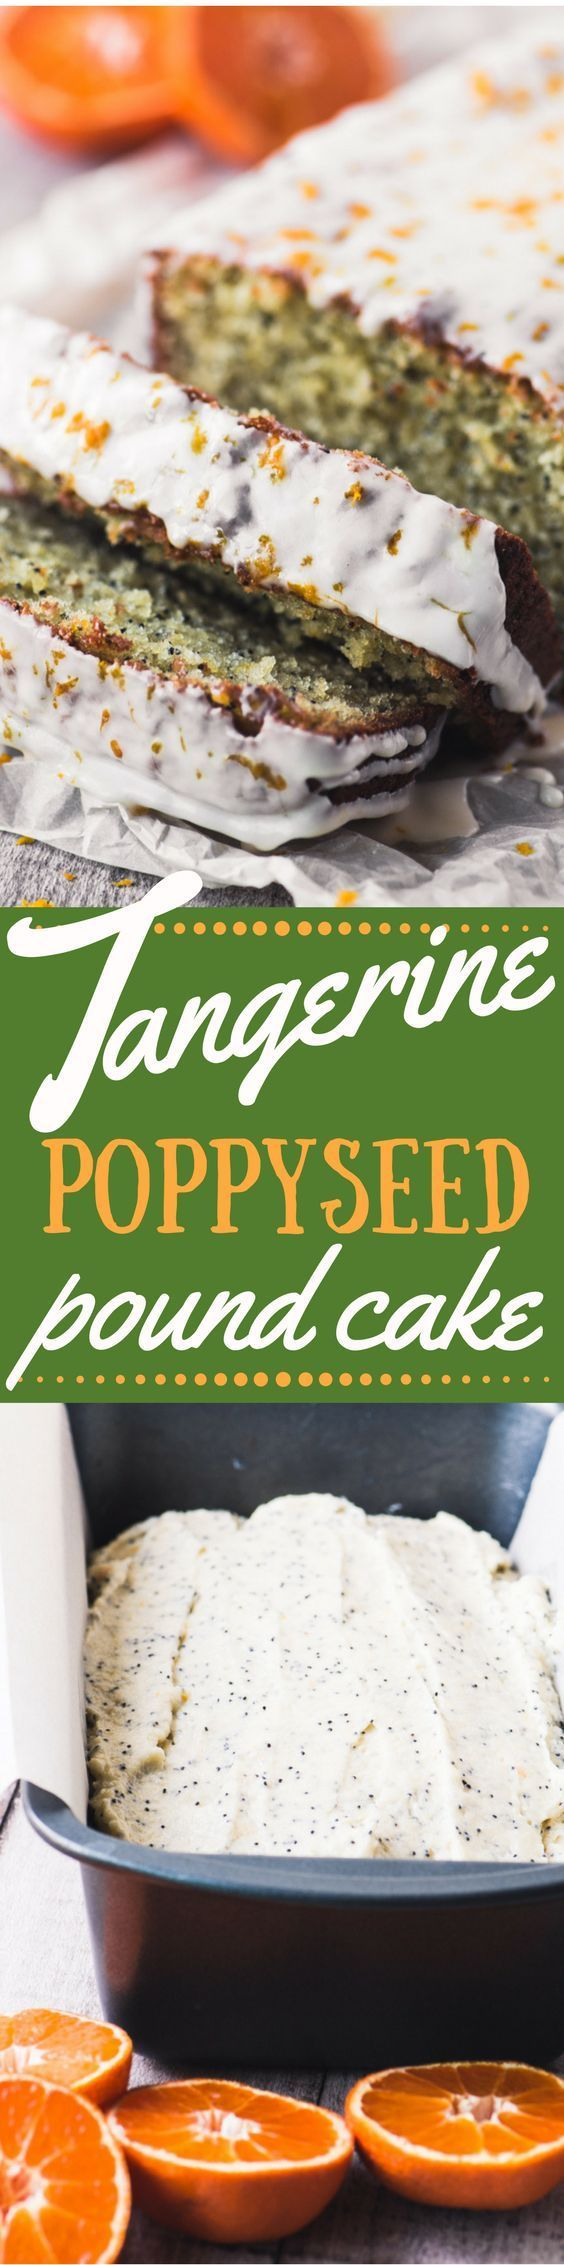 Tangerine Poppy Seed Pound Cake is bursting with juicy citrus flavor and crunchy poppy seeds ~ just when you thought winter had nothing fresh to offer! ~ http://theviewfromgreatisland.com